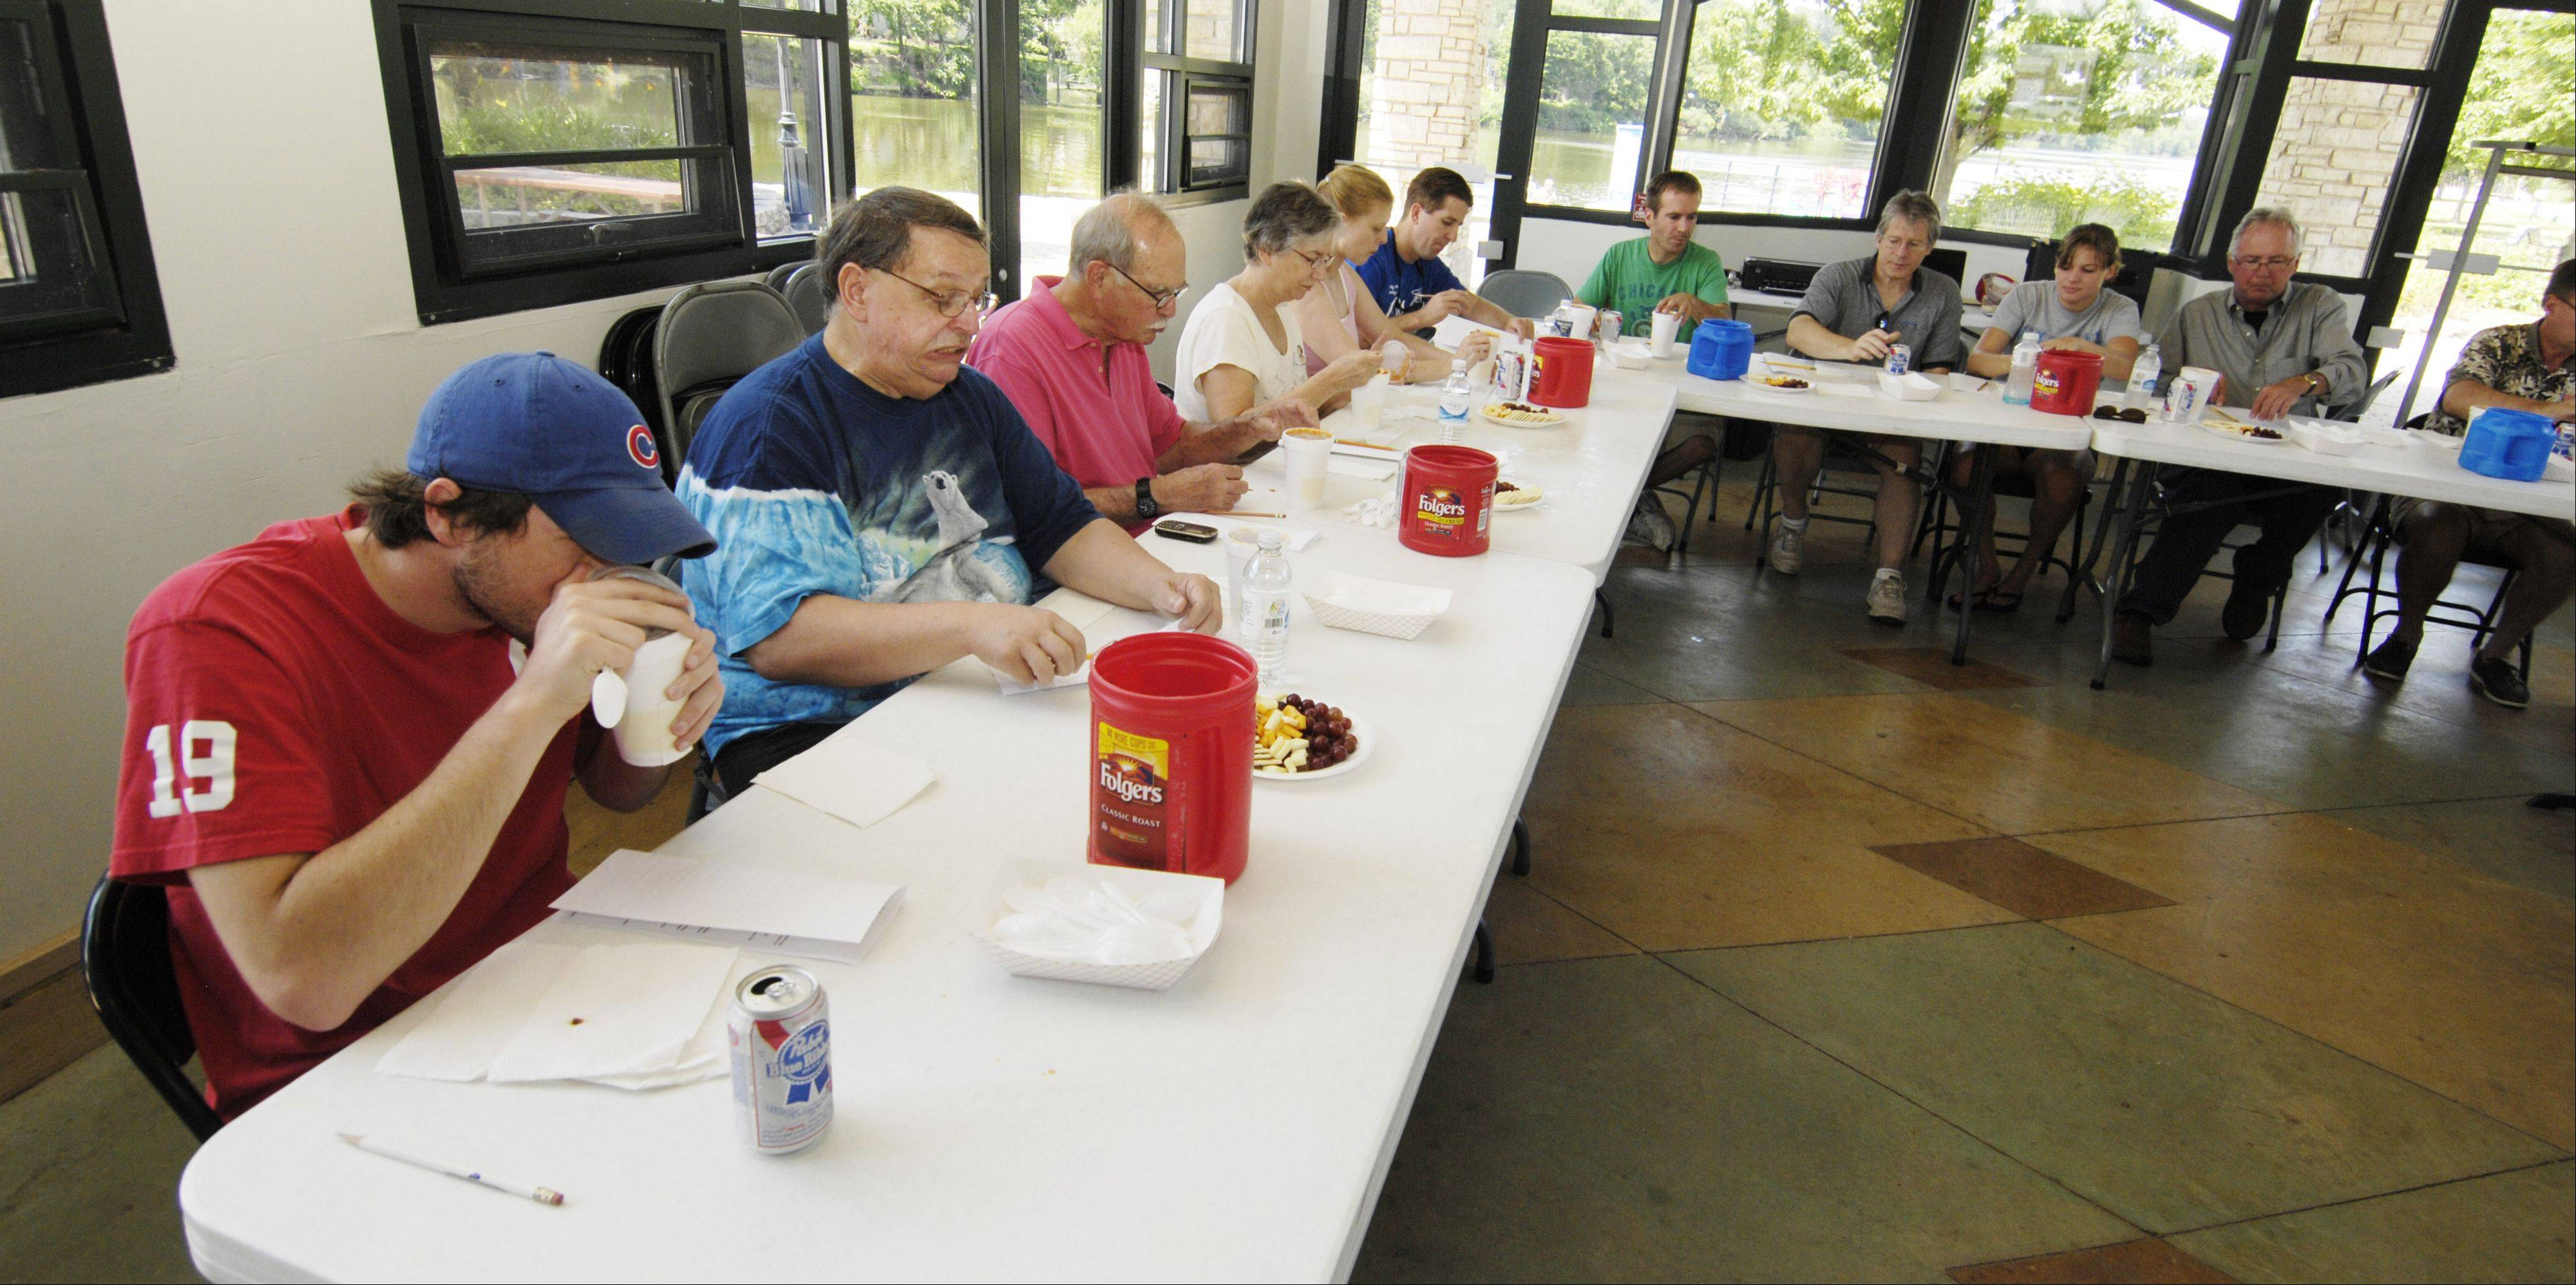 A panel of judges sample chili during the Windmill City Chili Cookoff in Batavia.